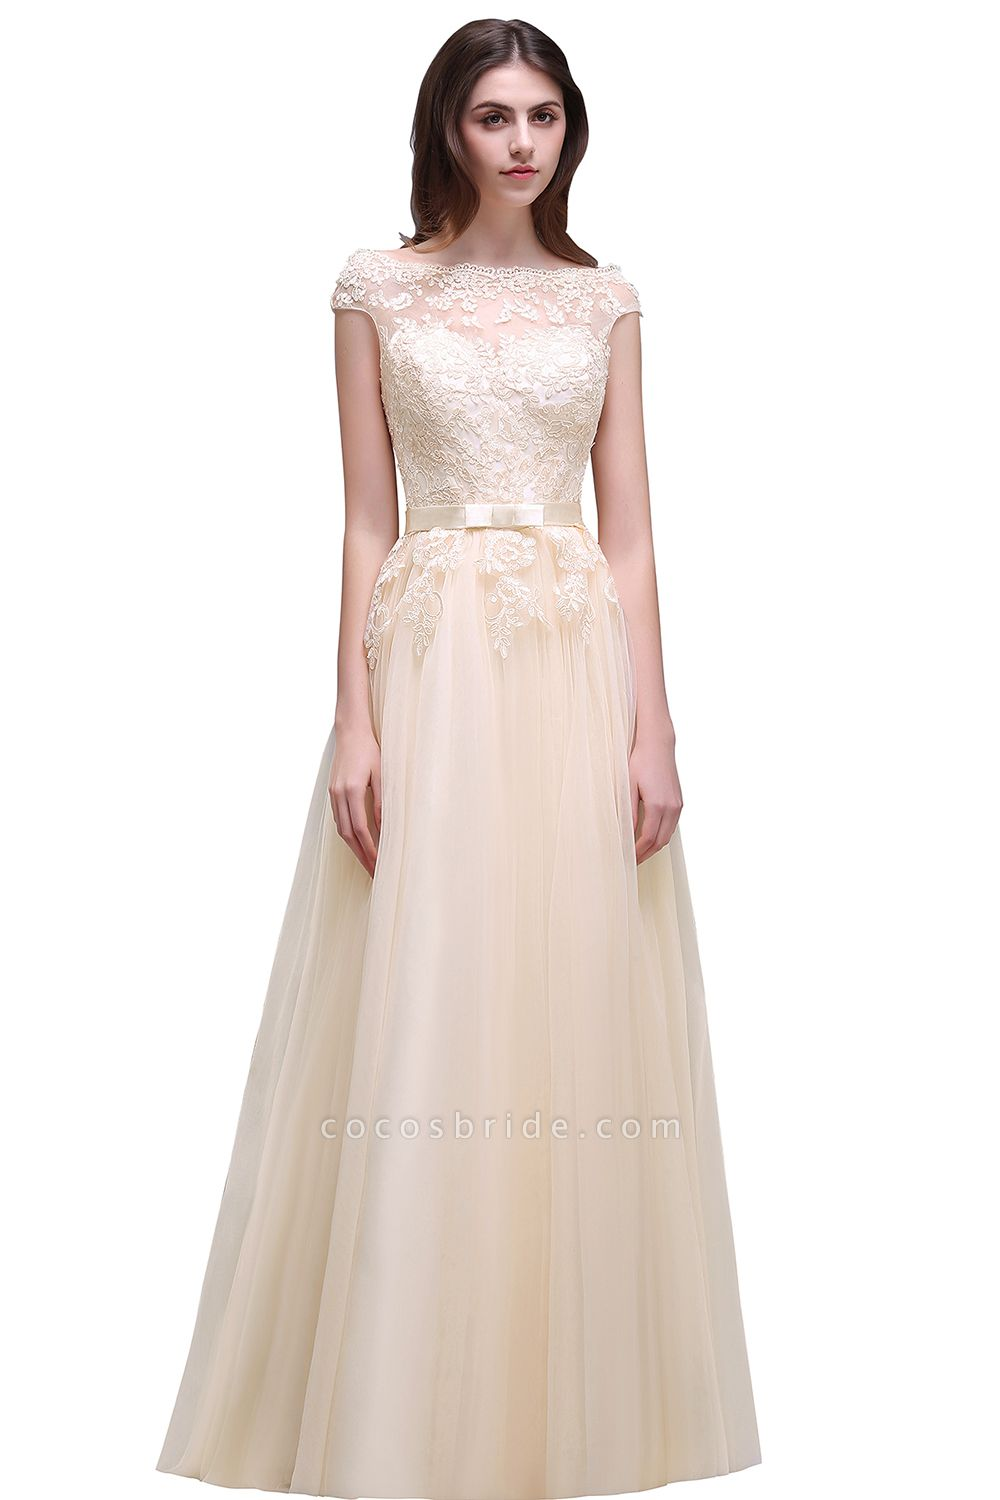 A-line Floor-Length Tulle Bridesmaid Dress With Lace Appliques